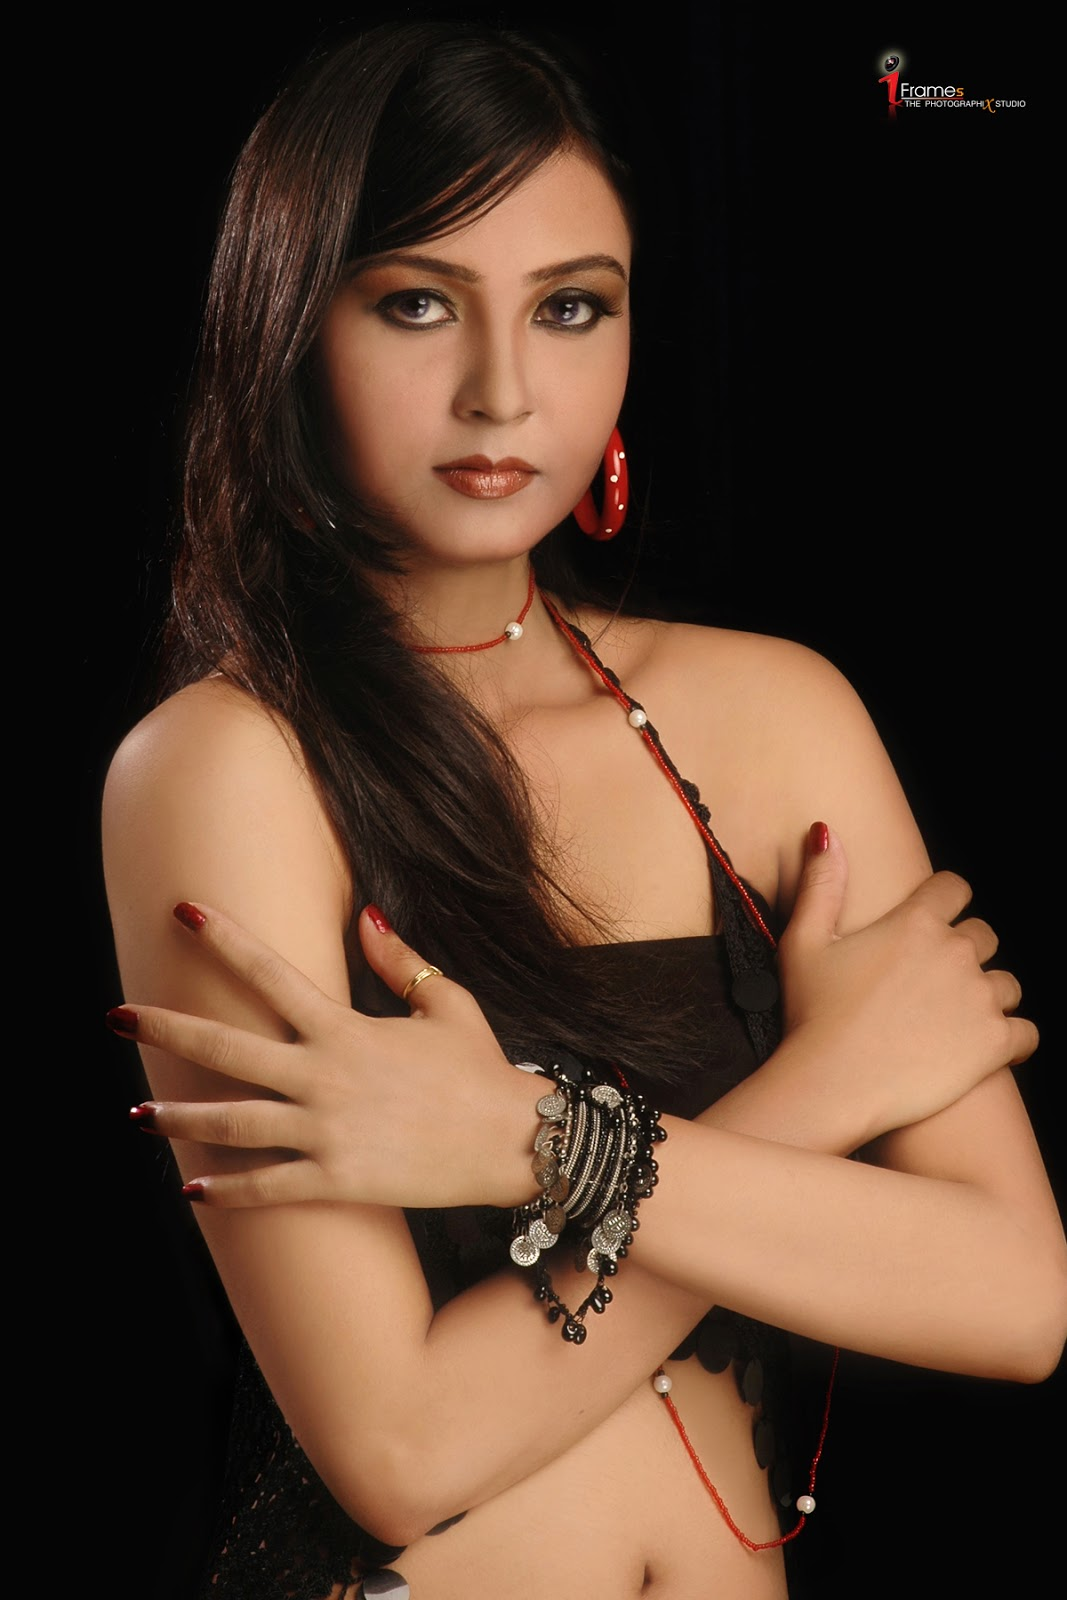 Opinion actresses bhojpuri films join. All